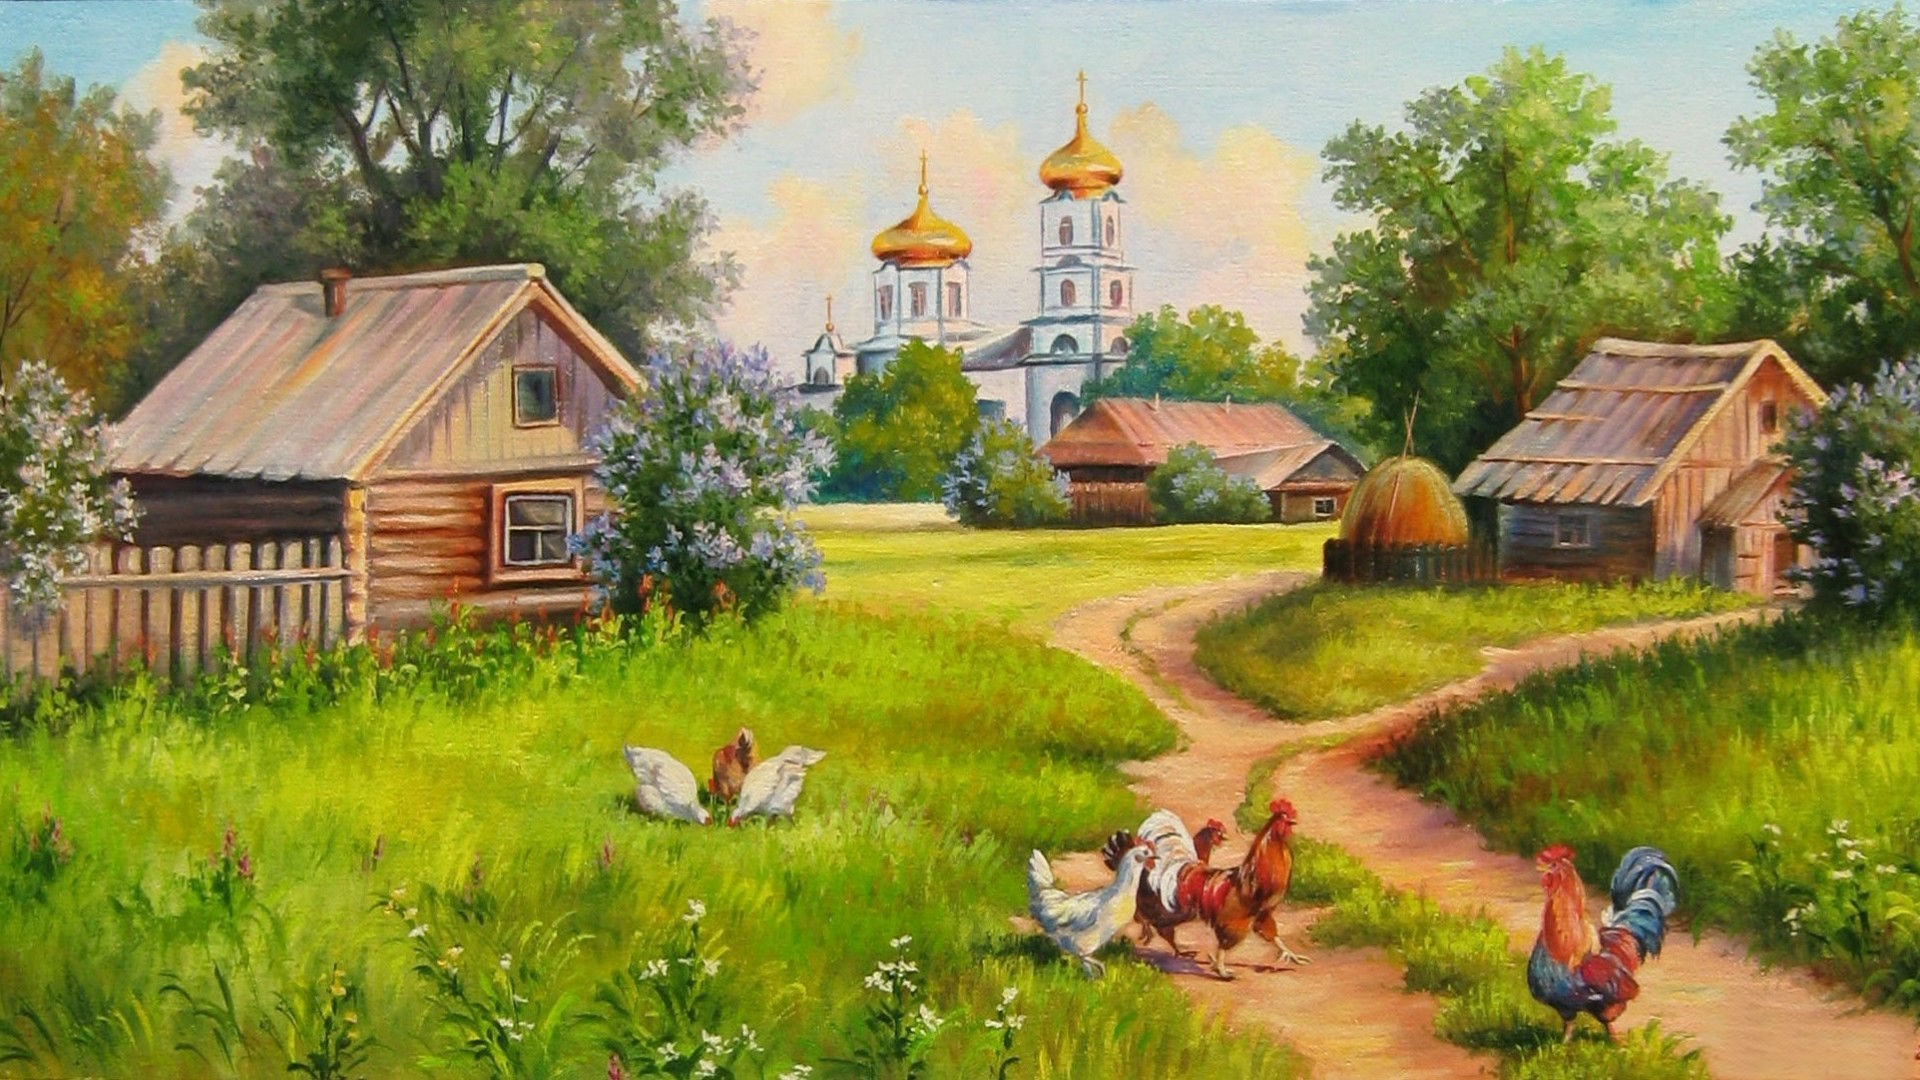 Home Wallpaper Life: Village Painting Hd Wallpaper